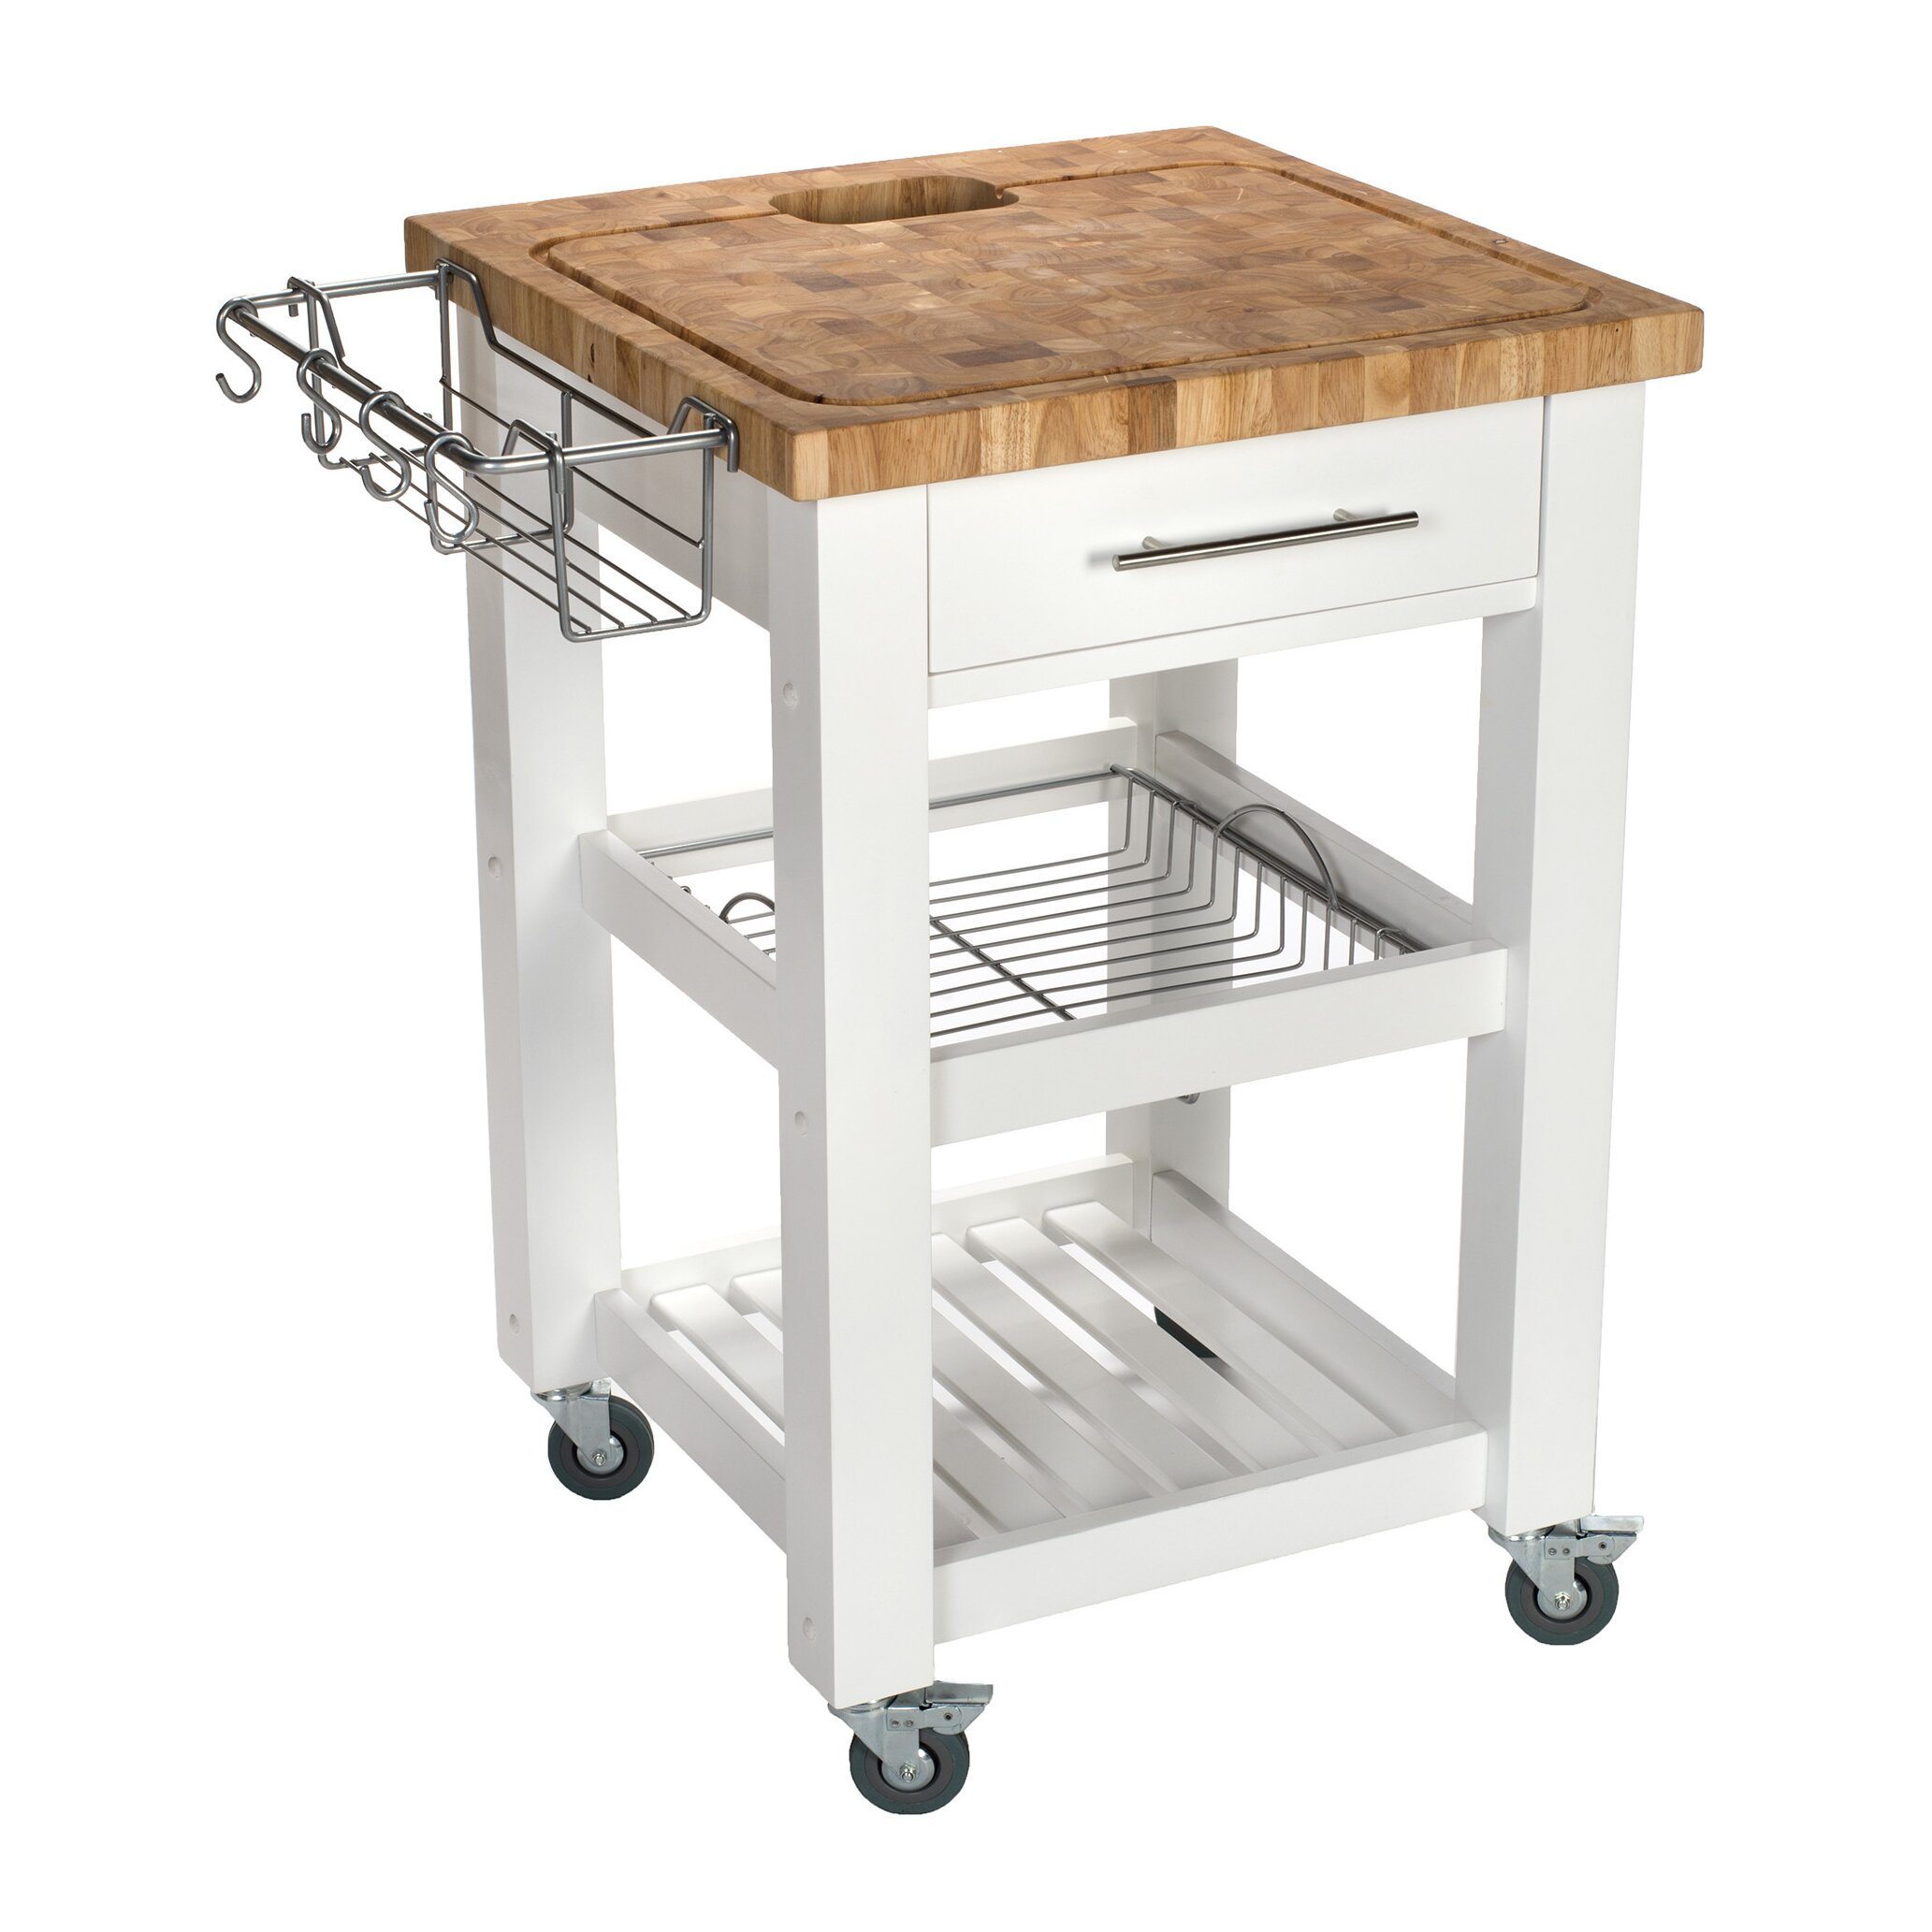 Chris Chris Pro Chef Kitchen Cart With Butcher Block Top Reviews